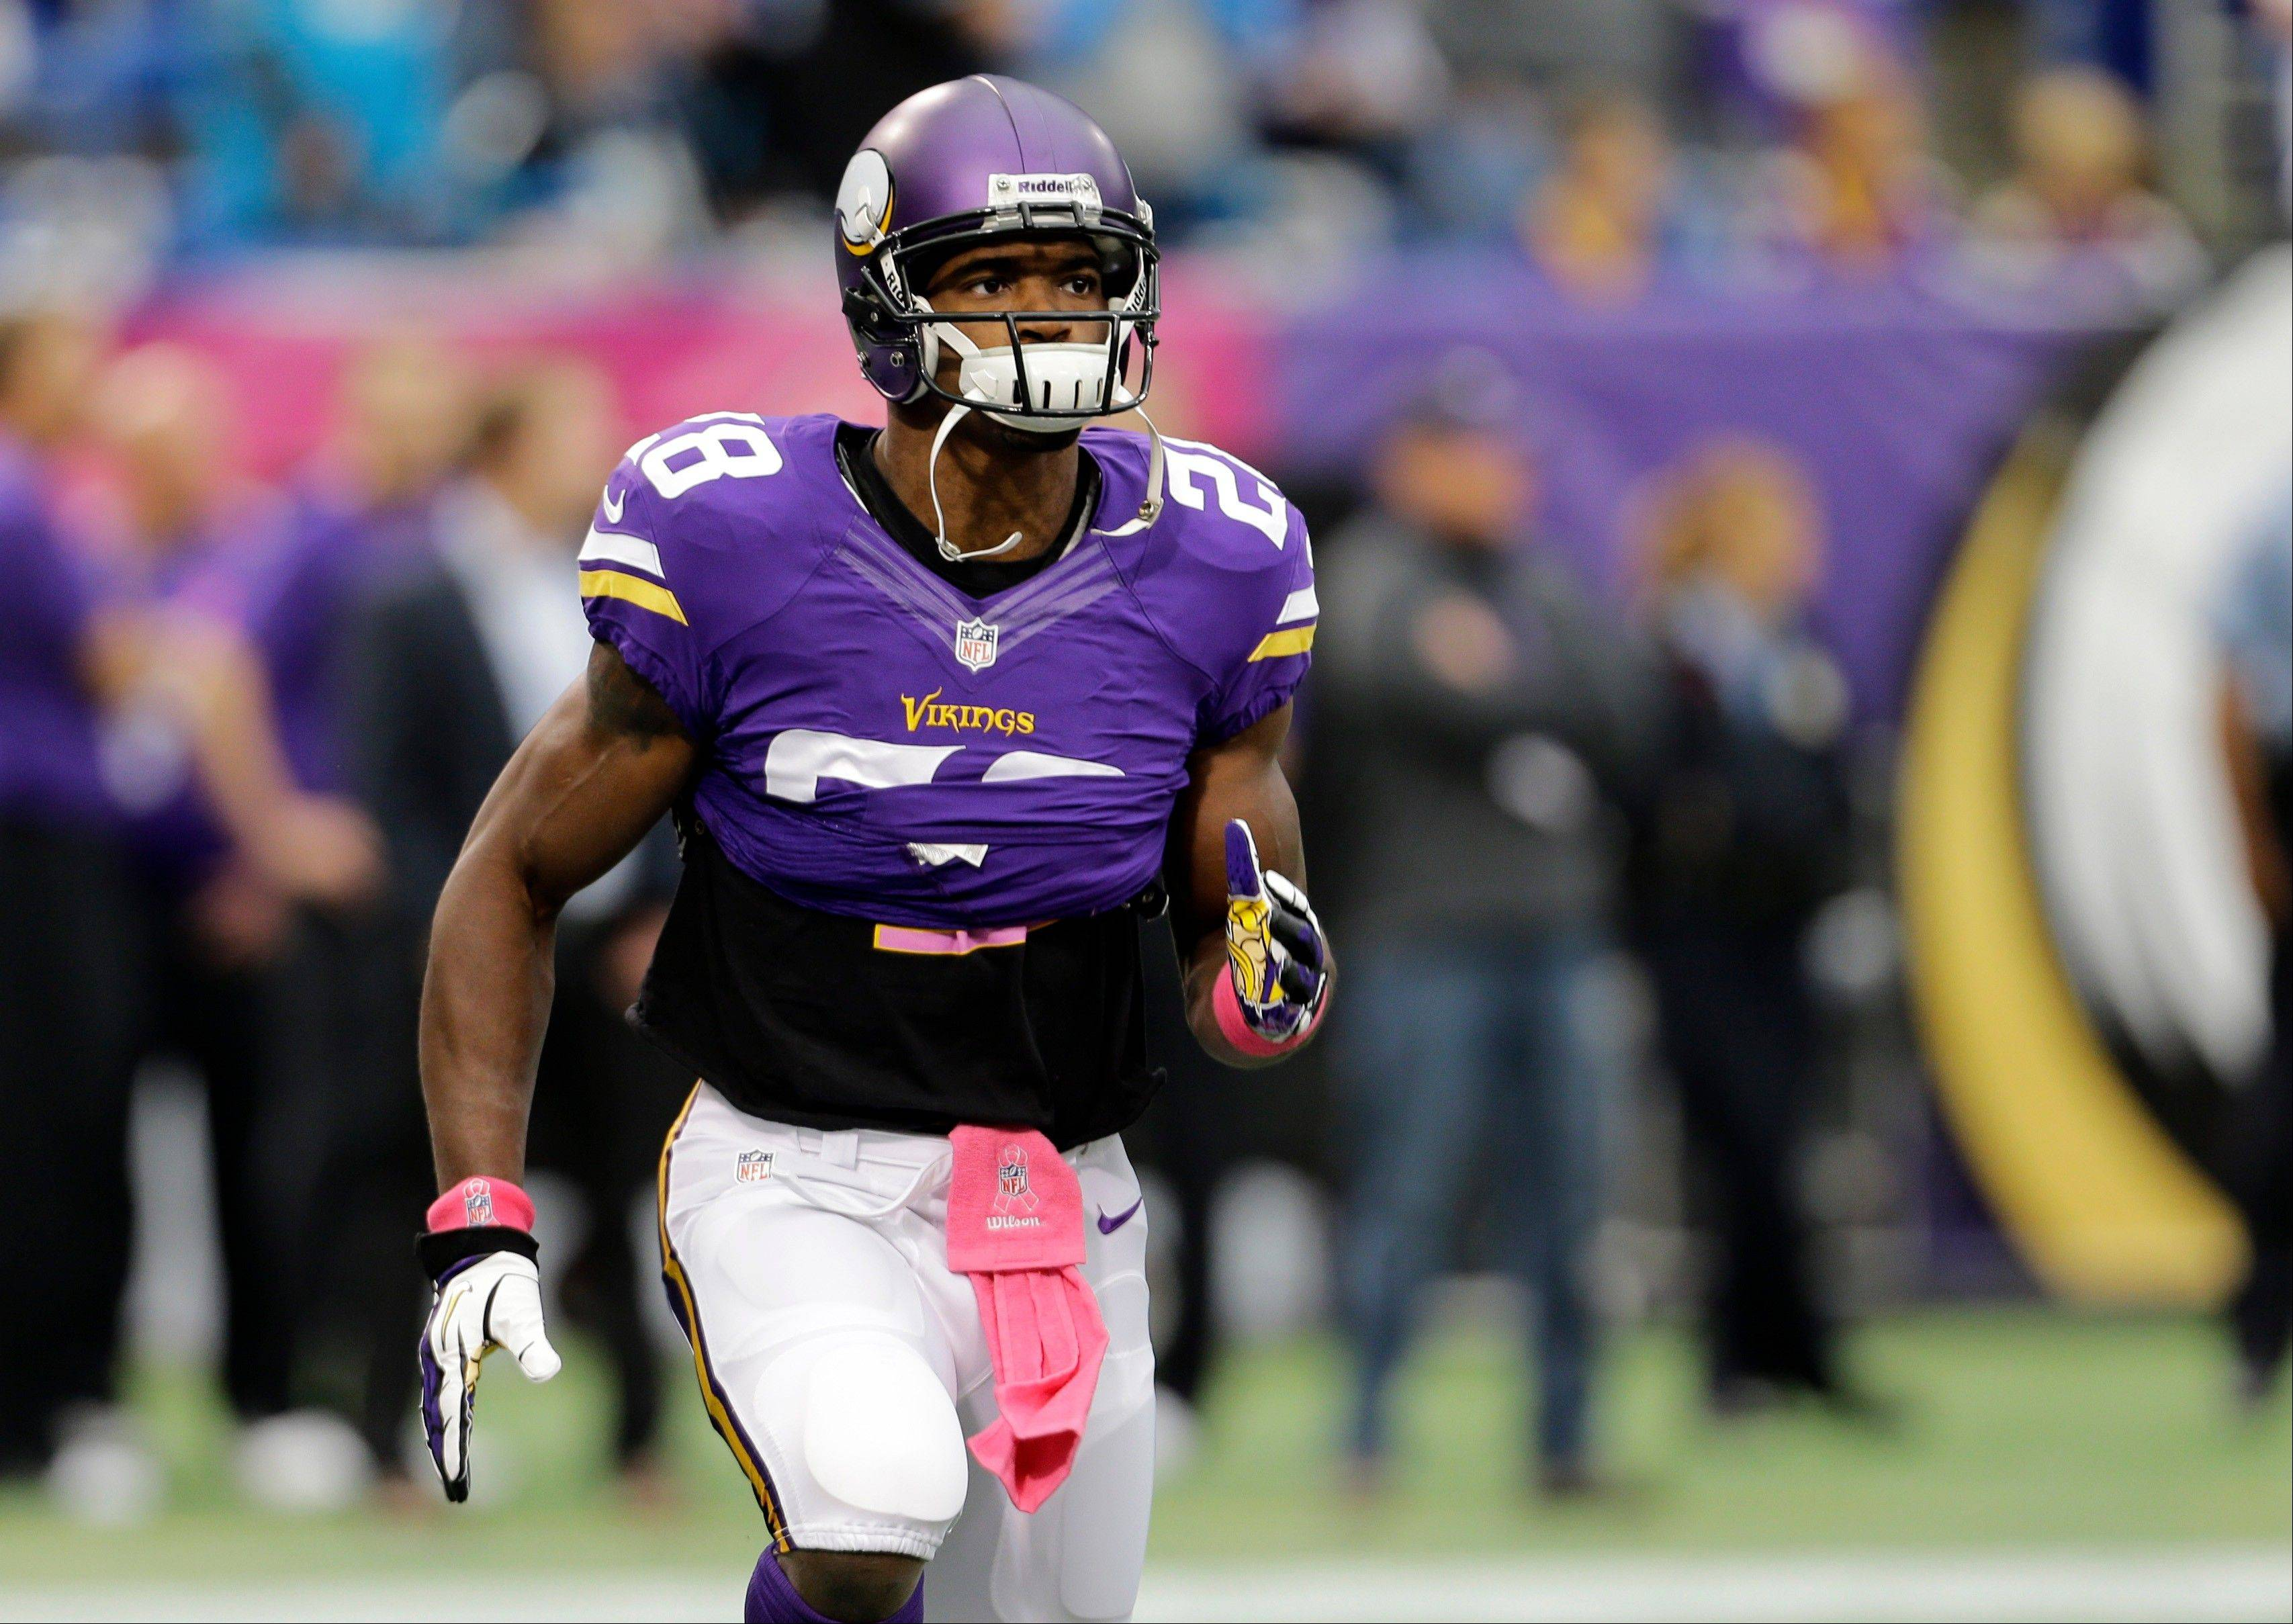 Peterson active for game after son's death